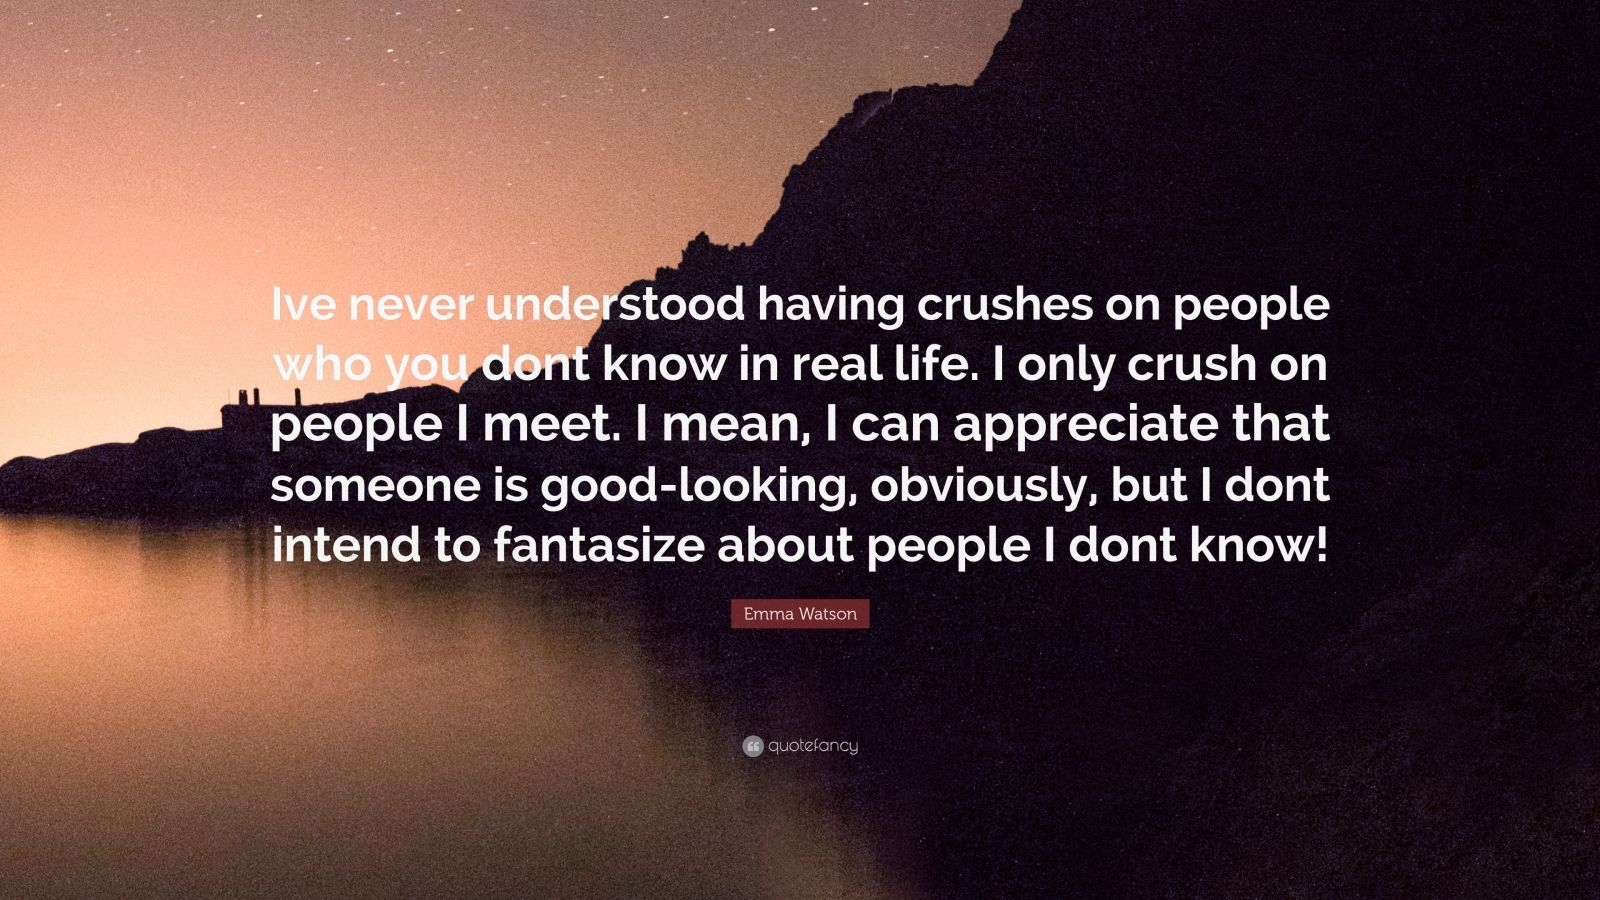 "Emma Watson Quote: ""Ive never understood having crushes on people who you dont know in real life. I only crush on people I meet. I mean, I can appreciate that someone is good-looking, obviously, but I dont intend to fantasize about people I dont know!"""